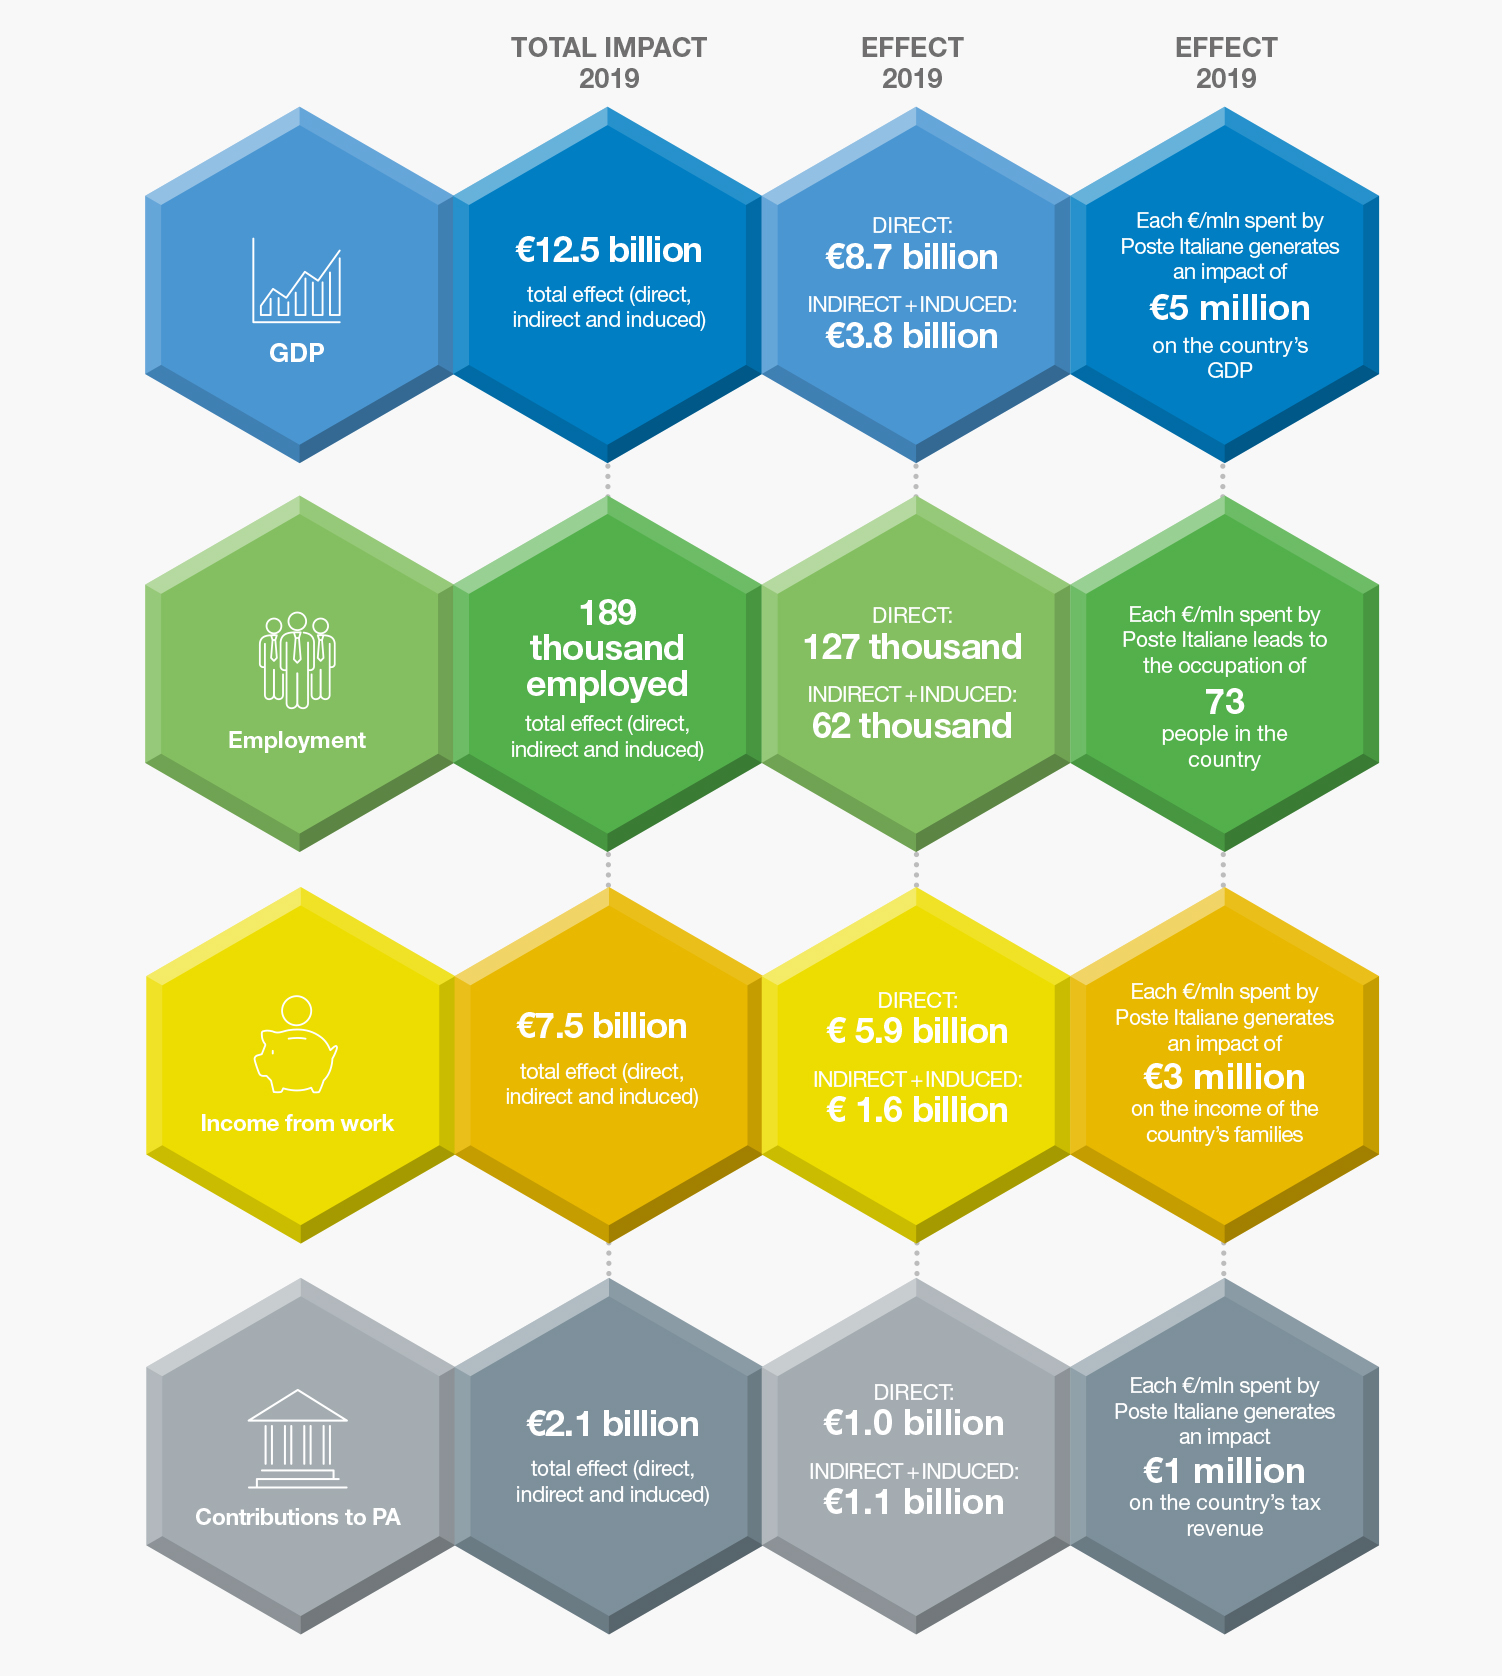 The impacts generated by Poste Italiane